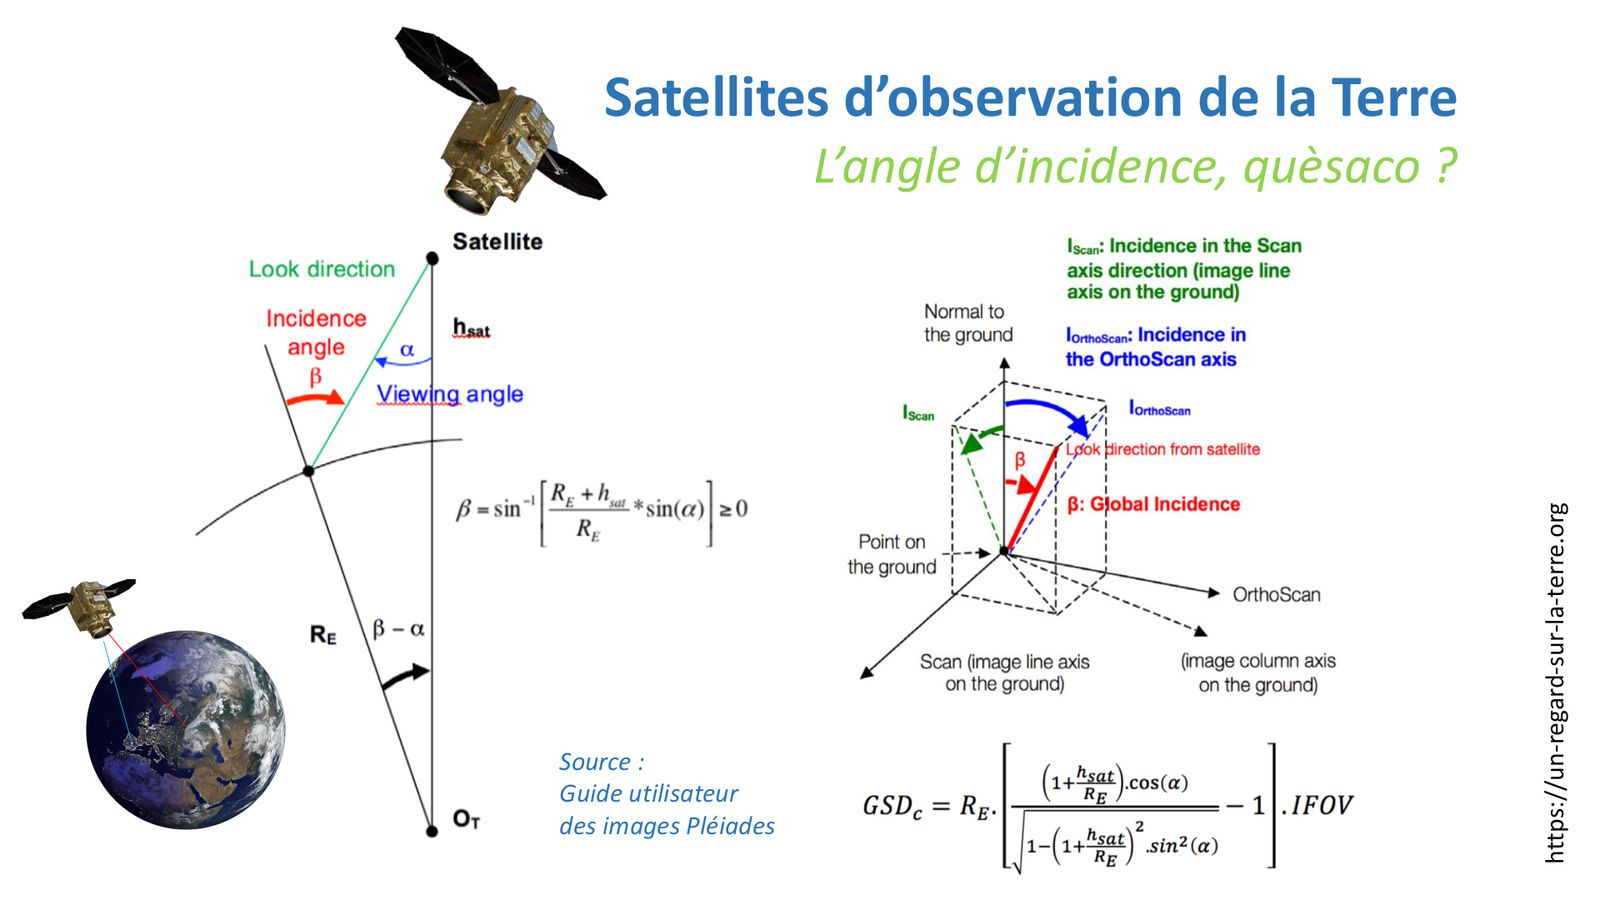 Incidence angle - Viewing angle - Earth Observation - Satellite - Pléiades Neo - Agilité - Orbite